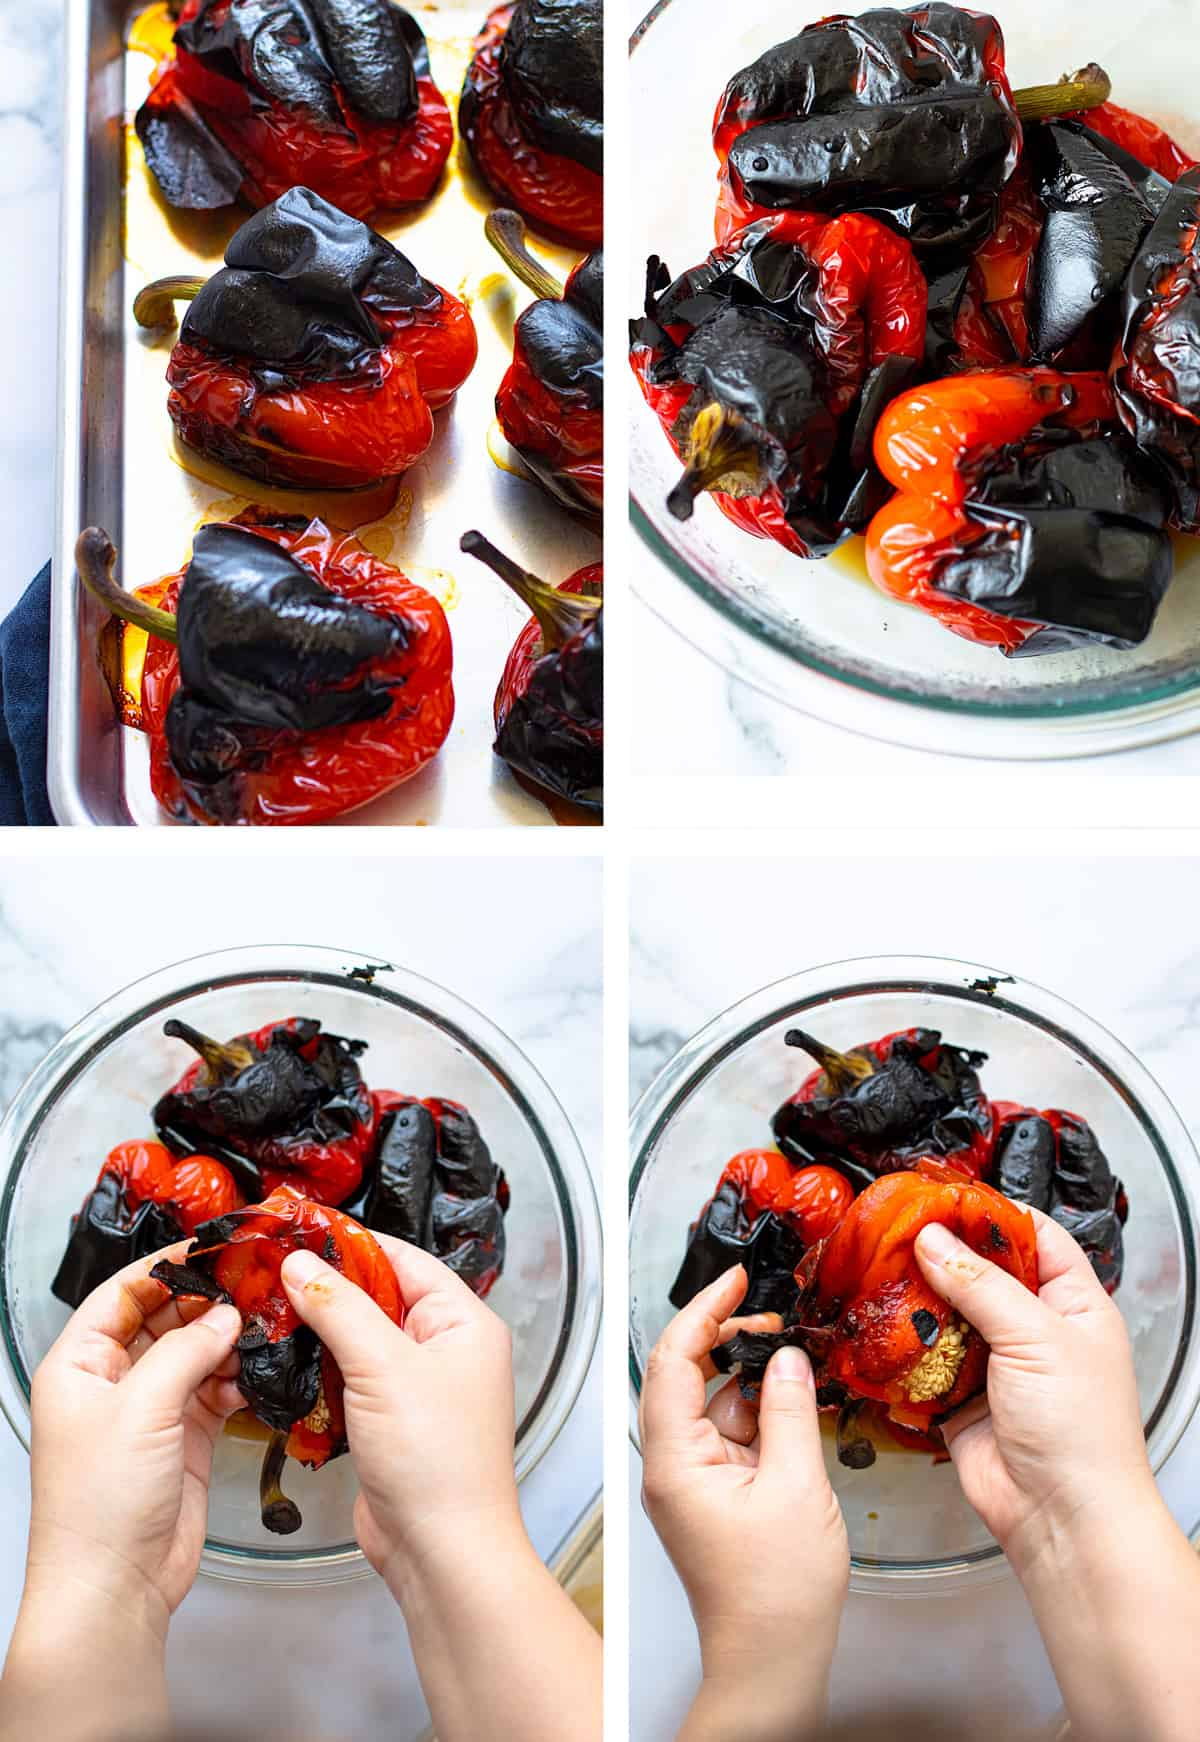 How to Roast Red Peppers step by step